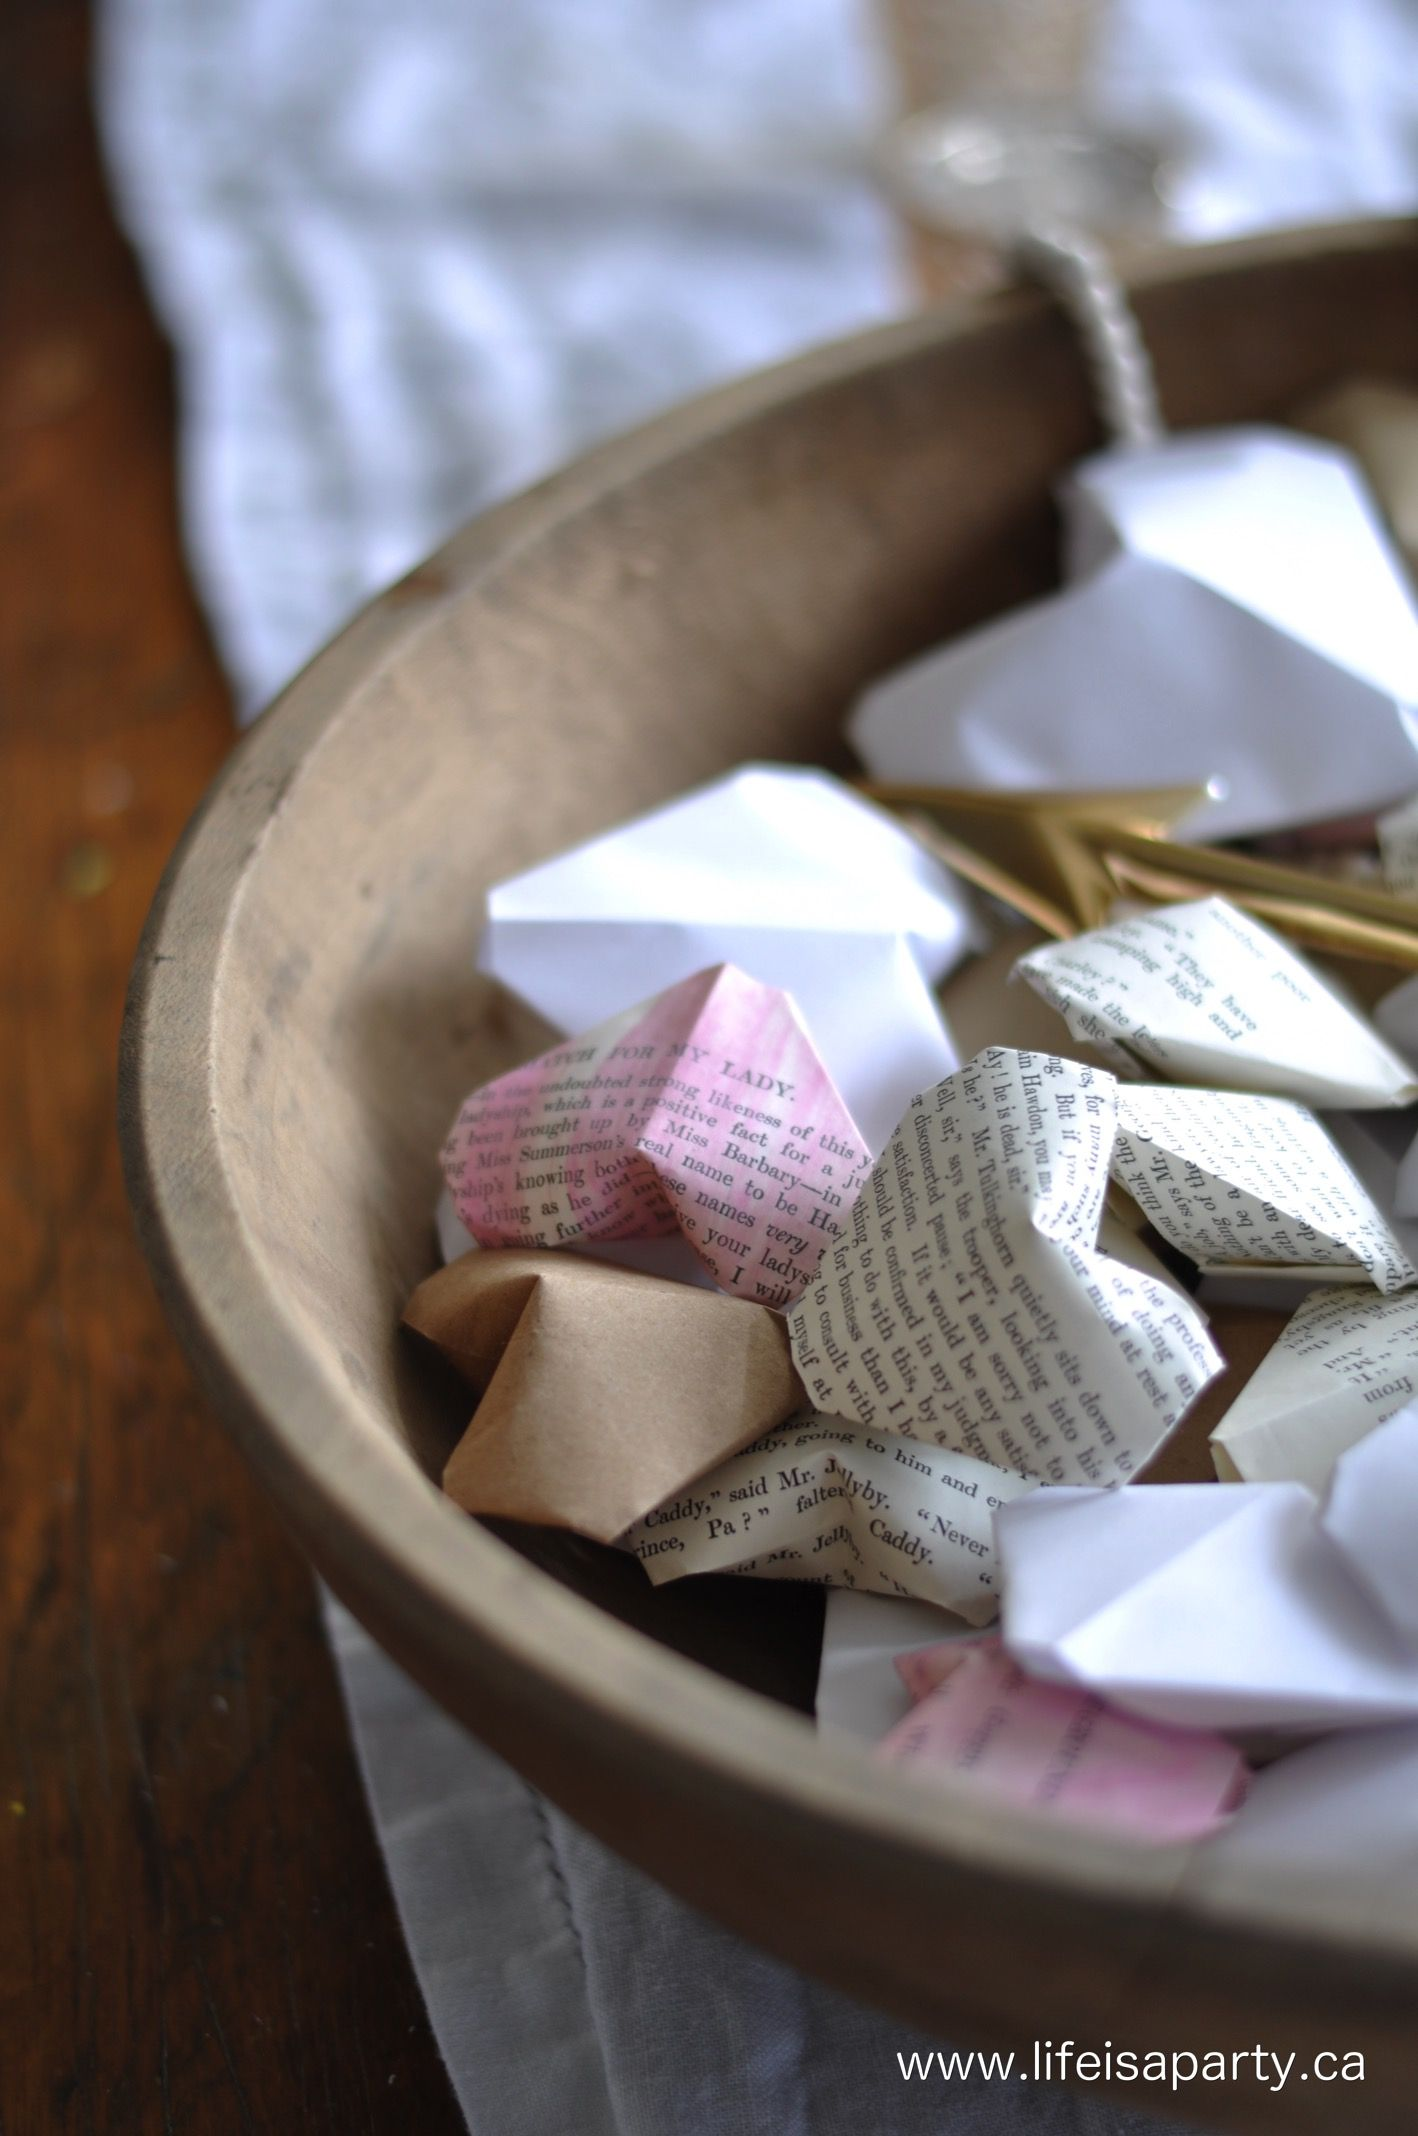 3D Origami Hearts: How To Make 3D Origami Hearts, with a ... - photo#39